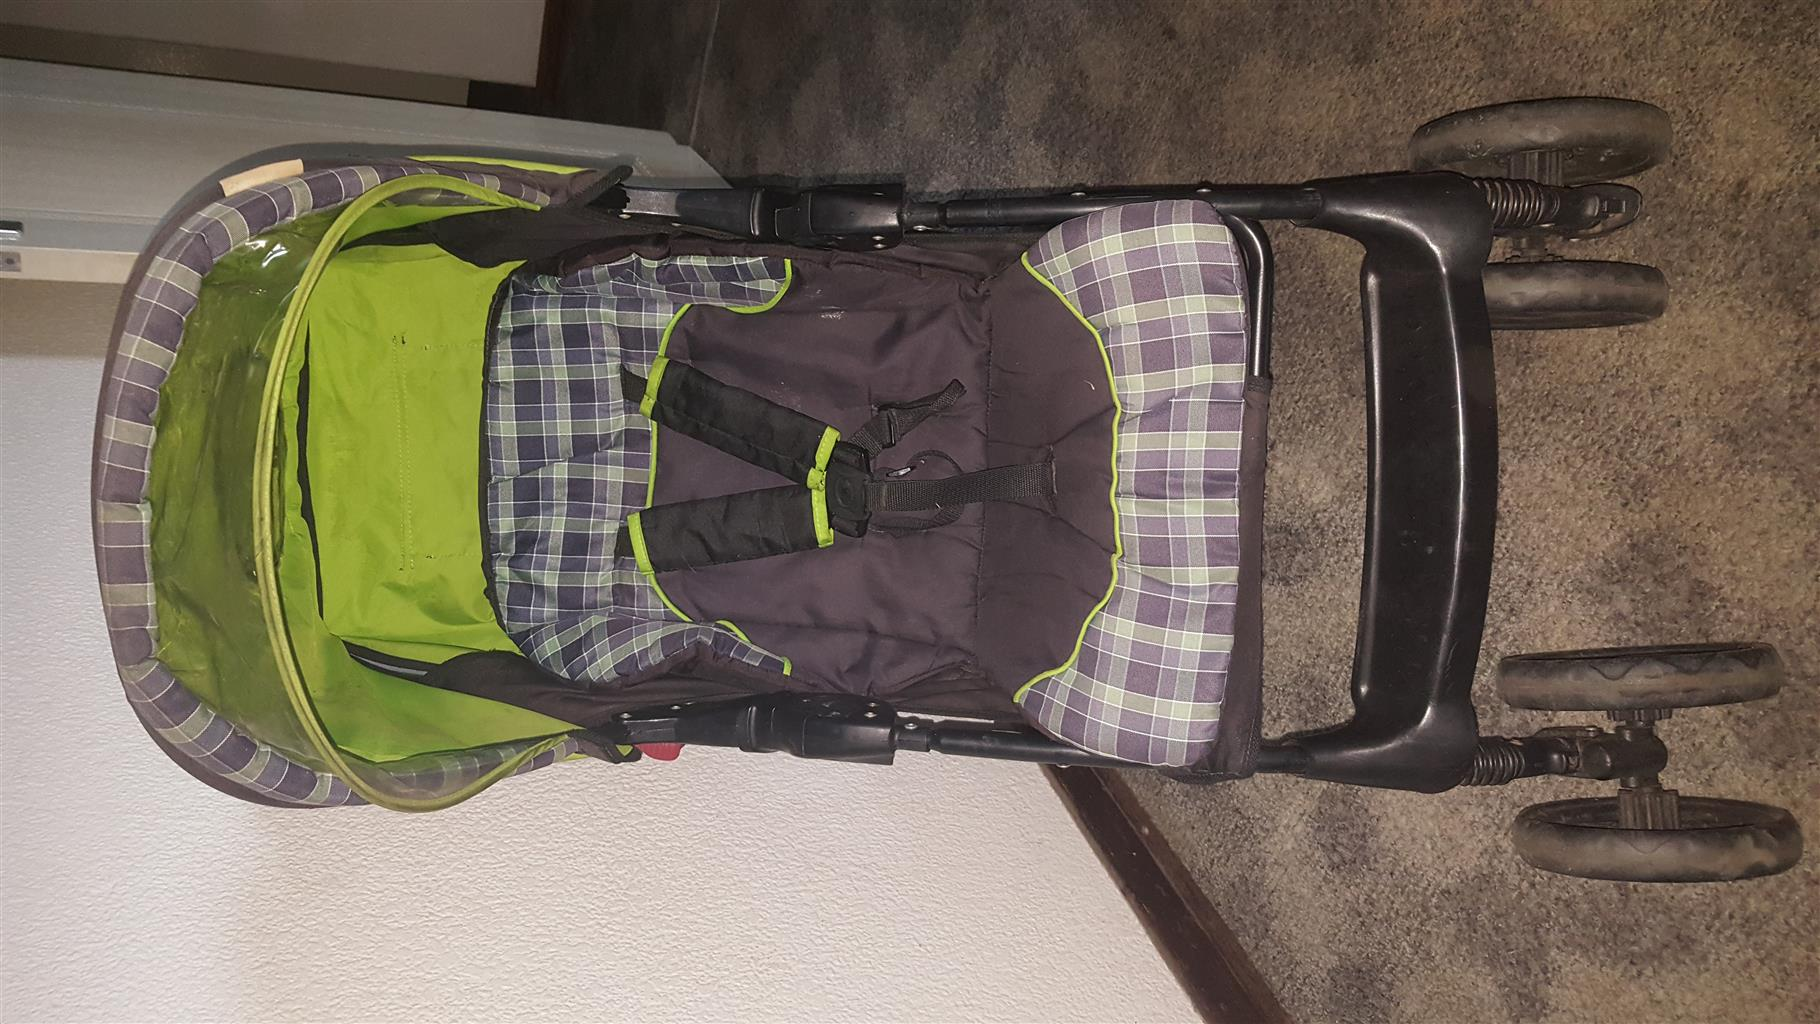 Chelino pram with car seat for sale